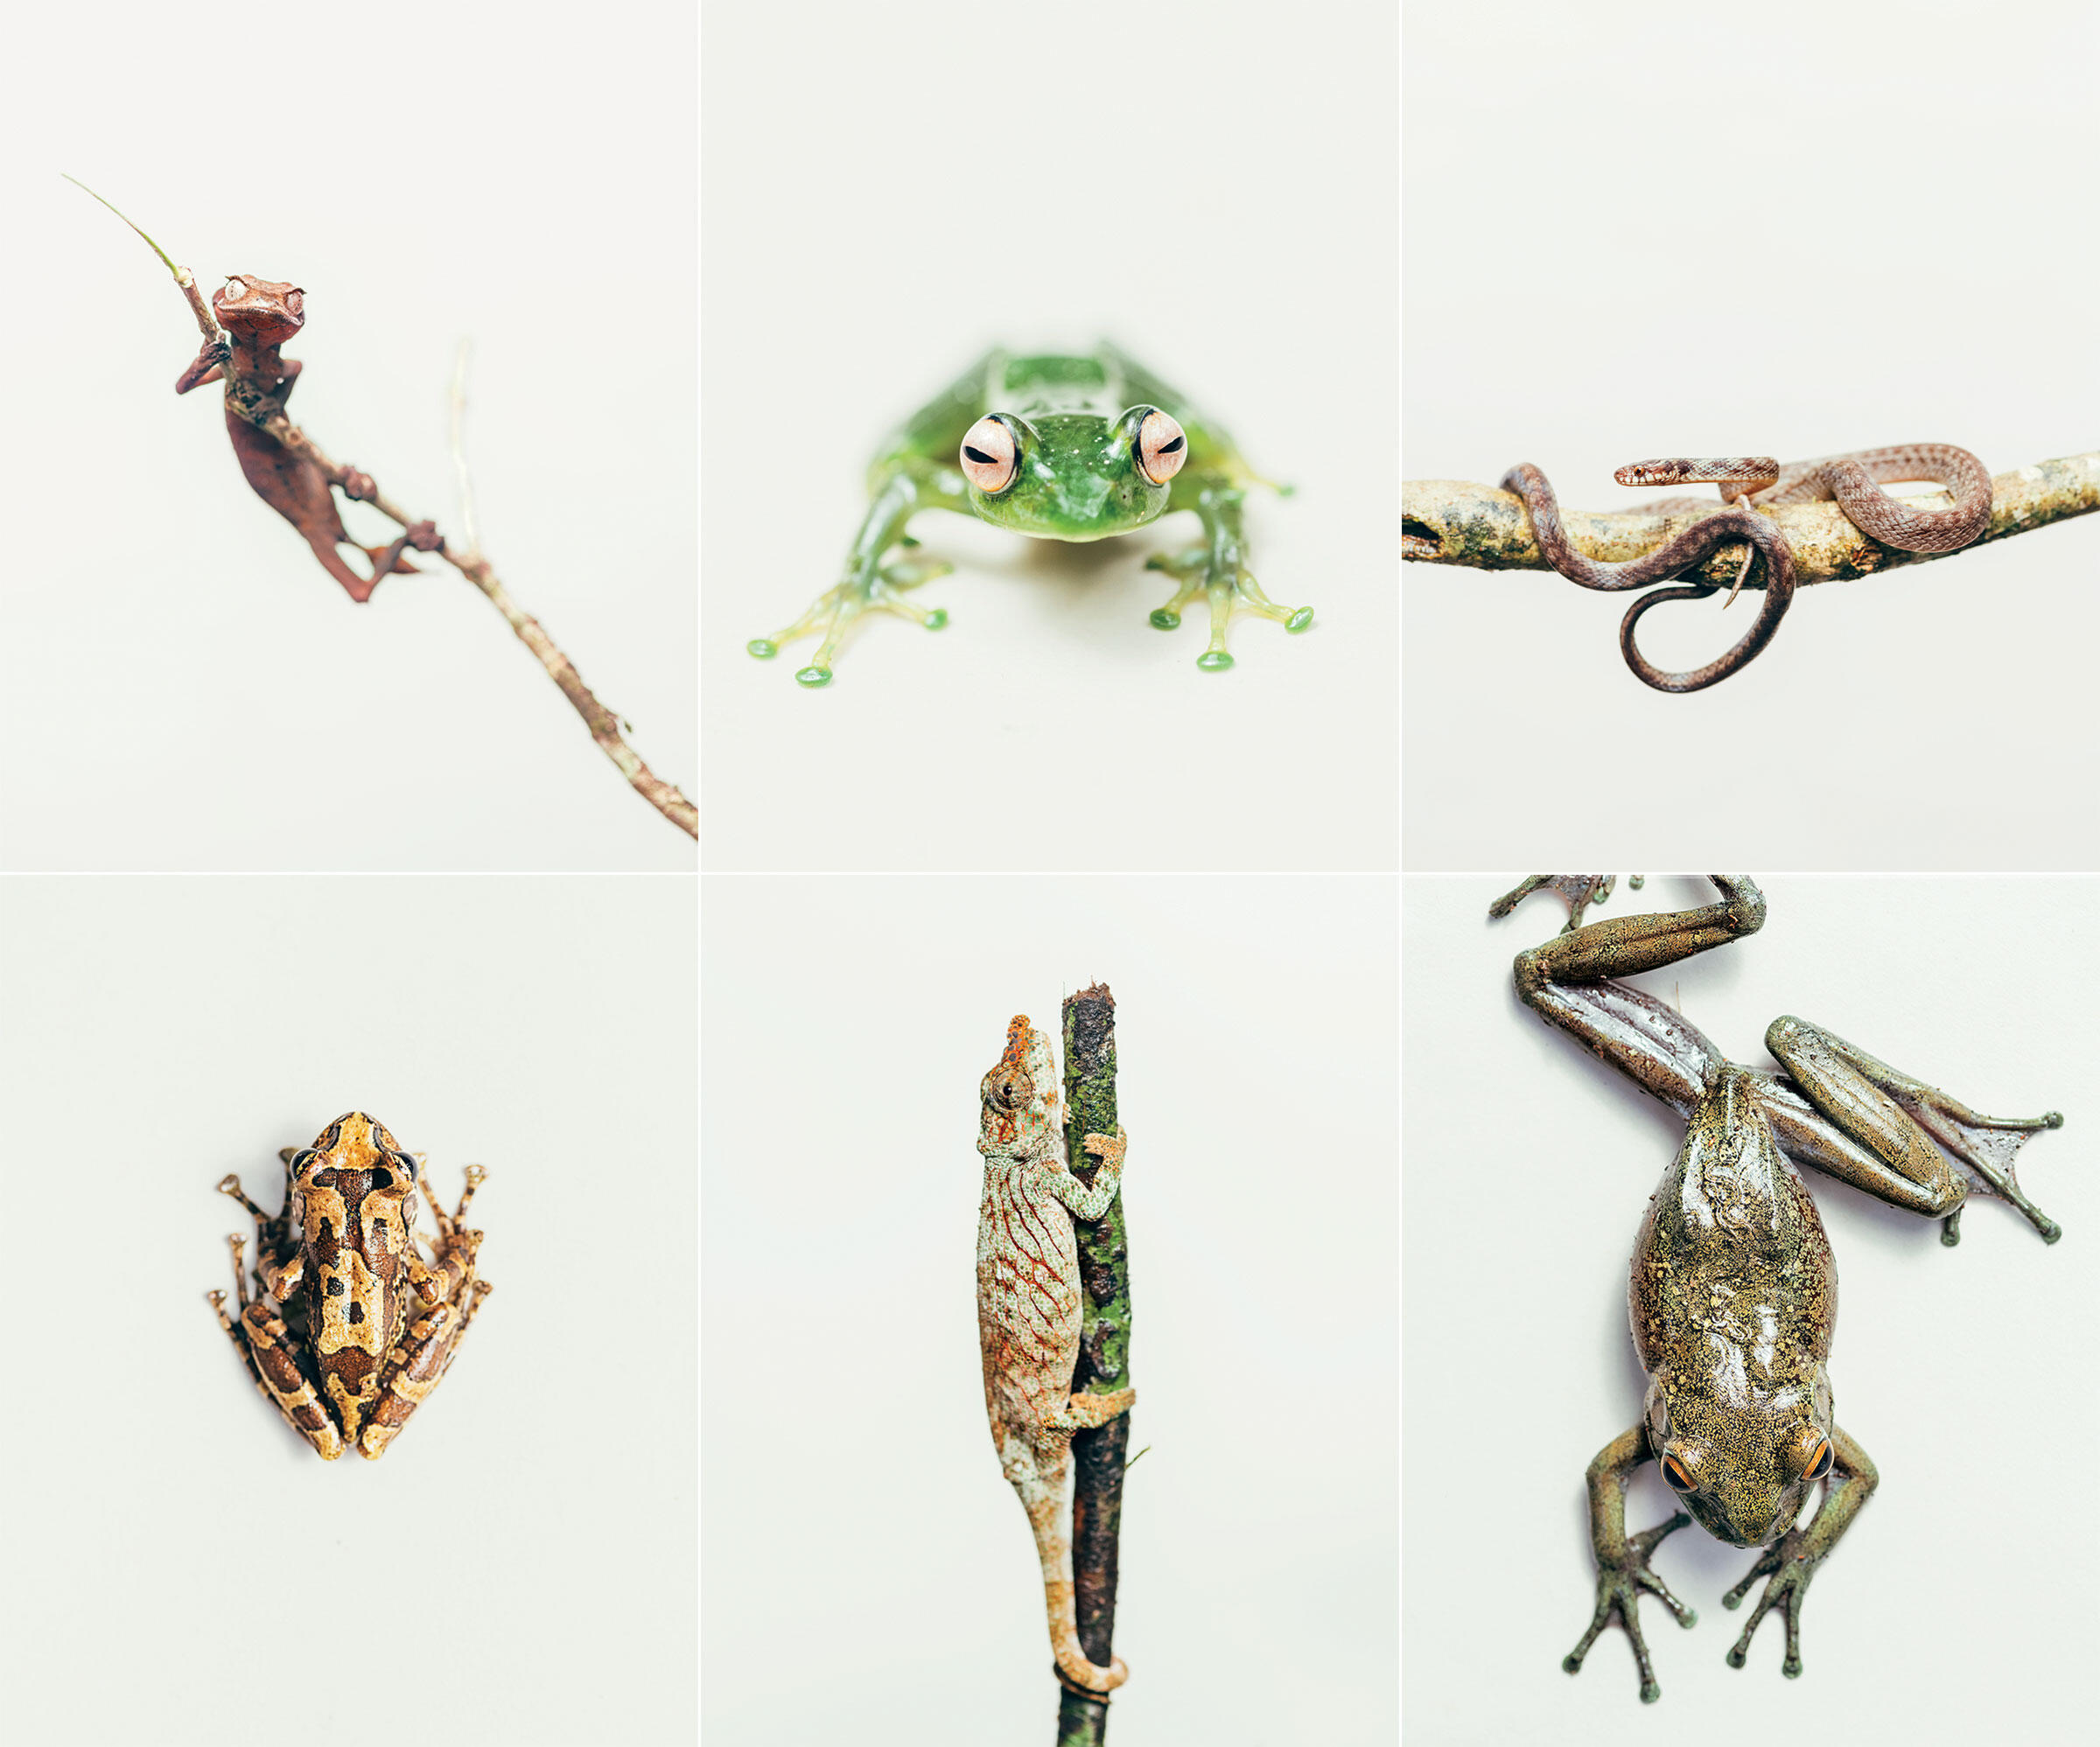 Clockwise from top left: Spearpoint leaf-tail gecko; Andreone's tree frog; Compsophis fatsibe snake; Boophis goudot frog; Calumma nasutum chameleon; Spinomantis nussbaumi frog. Photos: Tristan Spinski